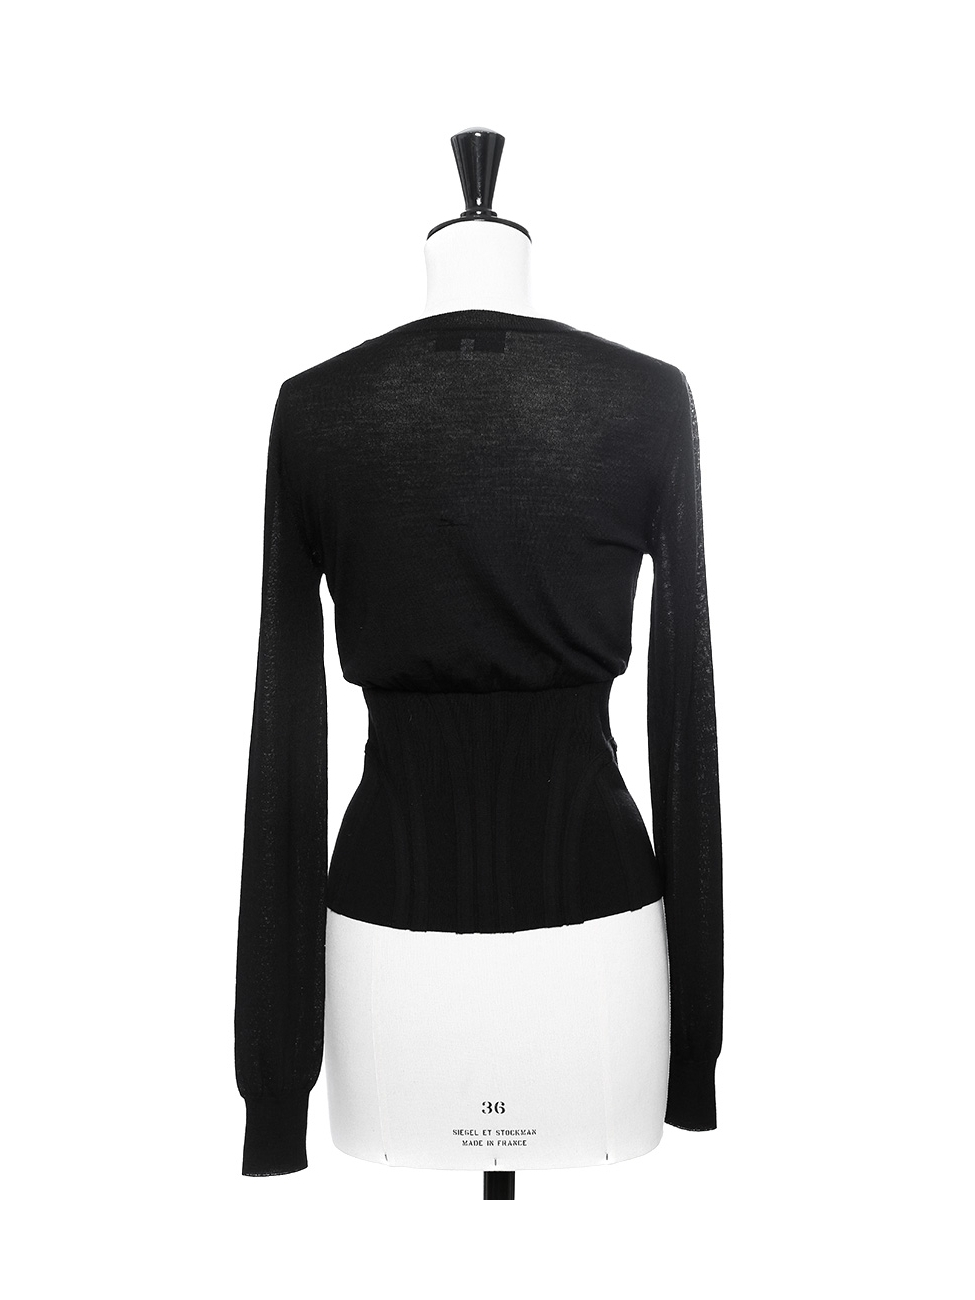 f4d48bfcbe4 Louise Paris - YVES SAINT LAURENT Black fine wool corset-like ...